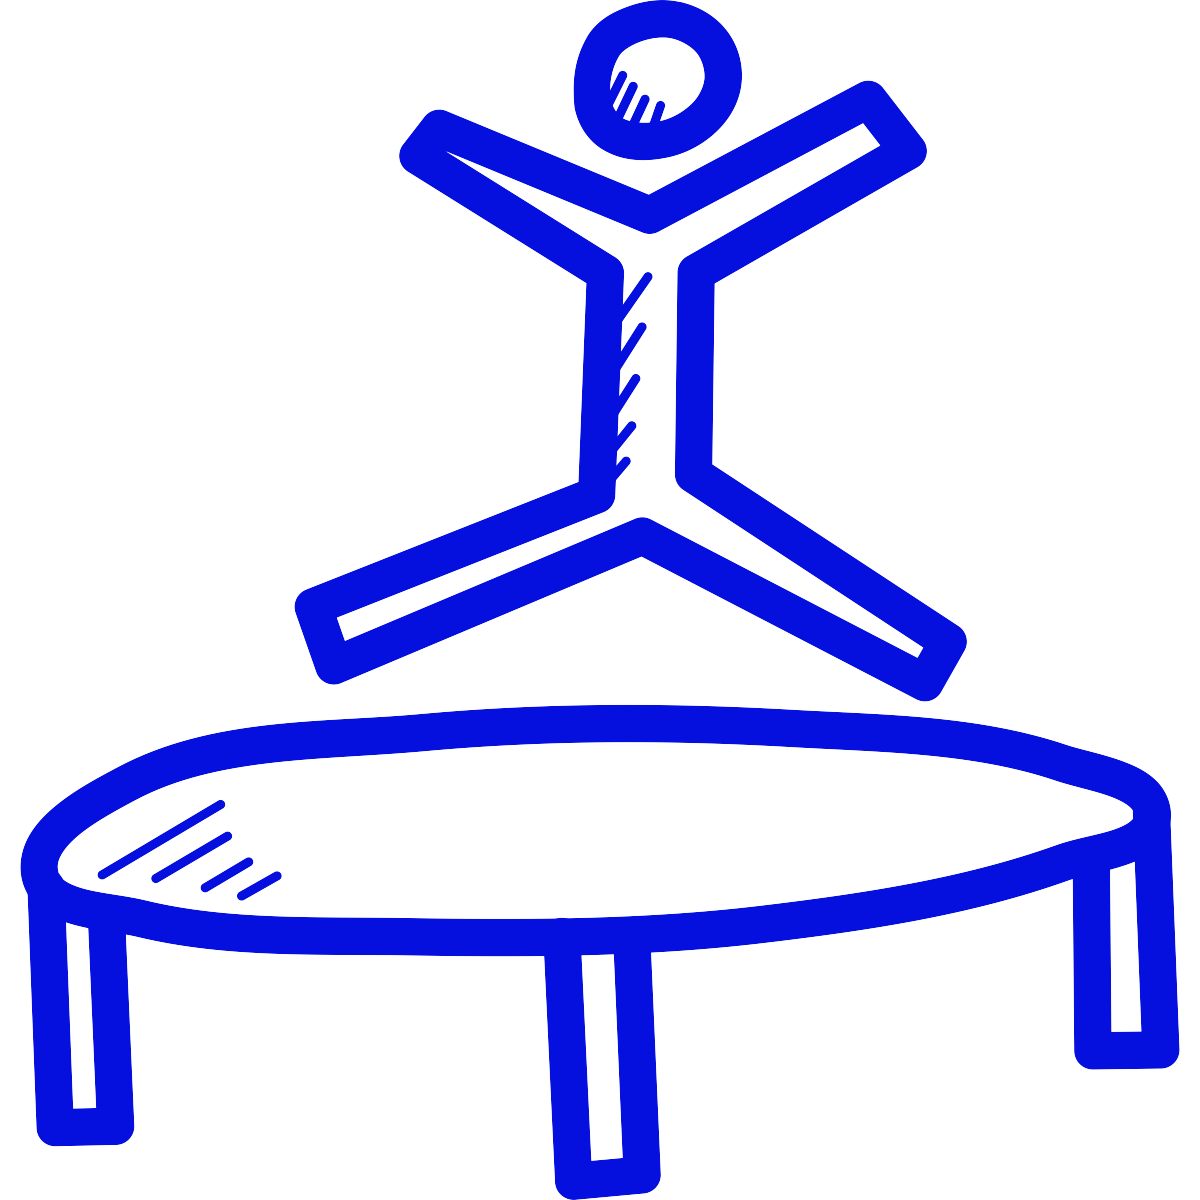 Line drawing of a person jumping on a trampoline